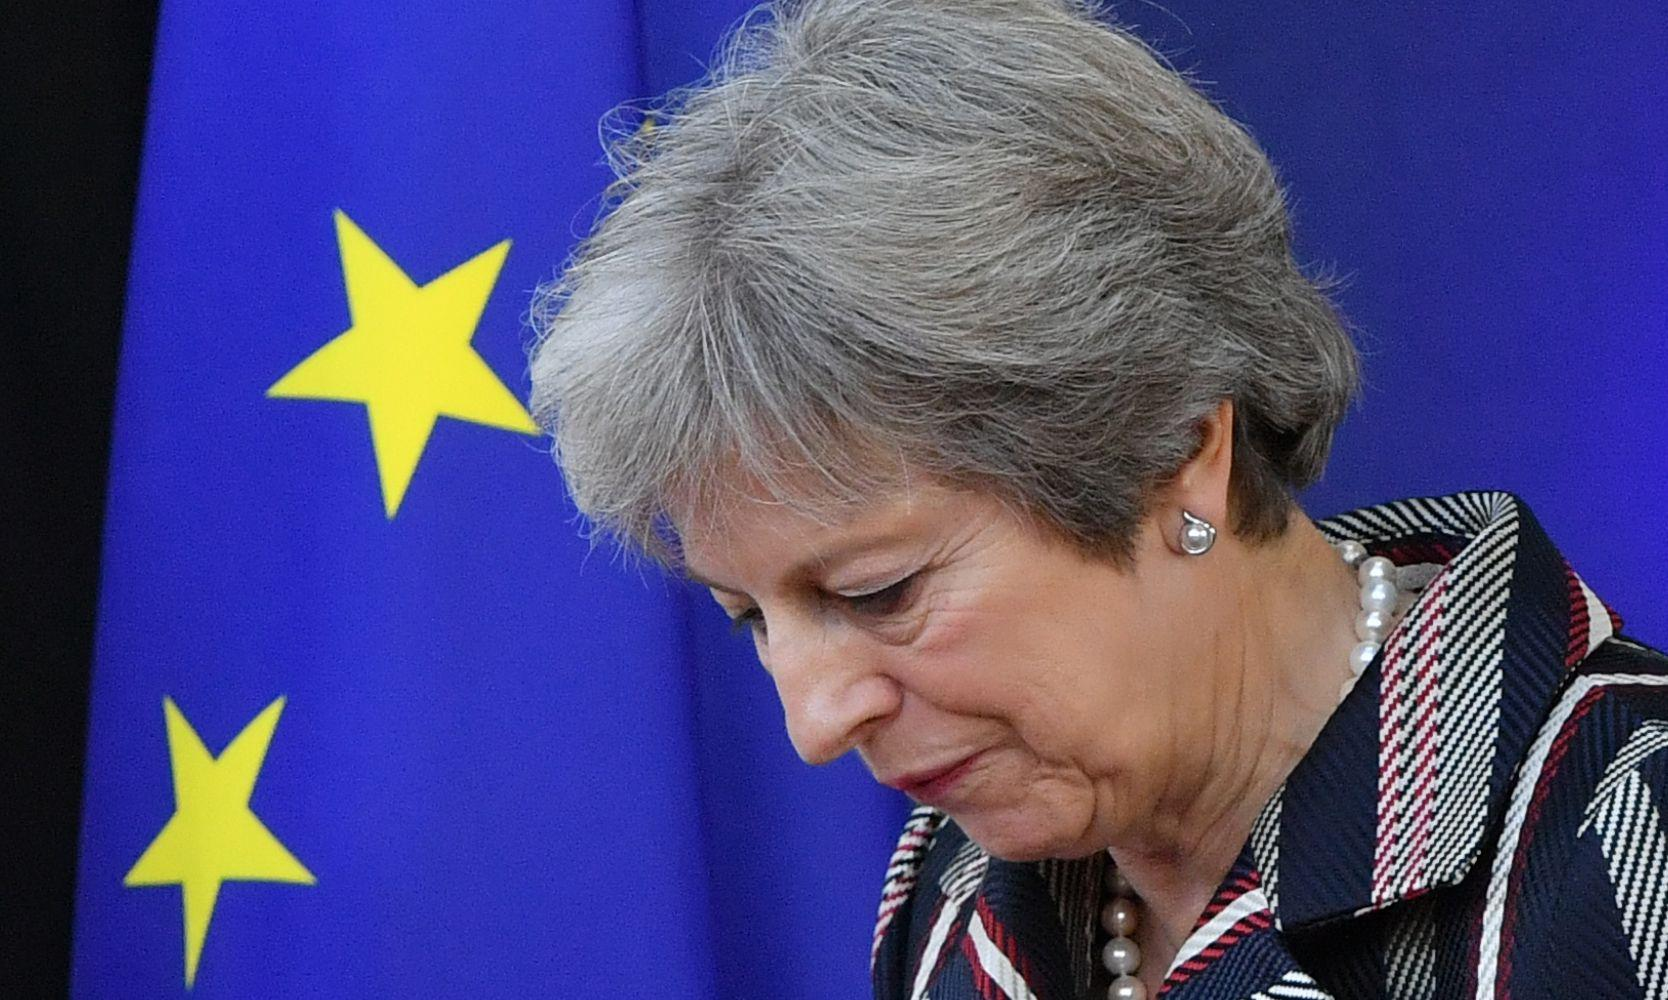 The Guardian view on Theresa May's Brexit: march to stop the madness